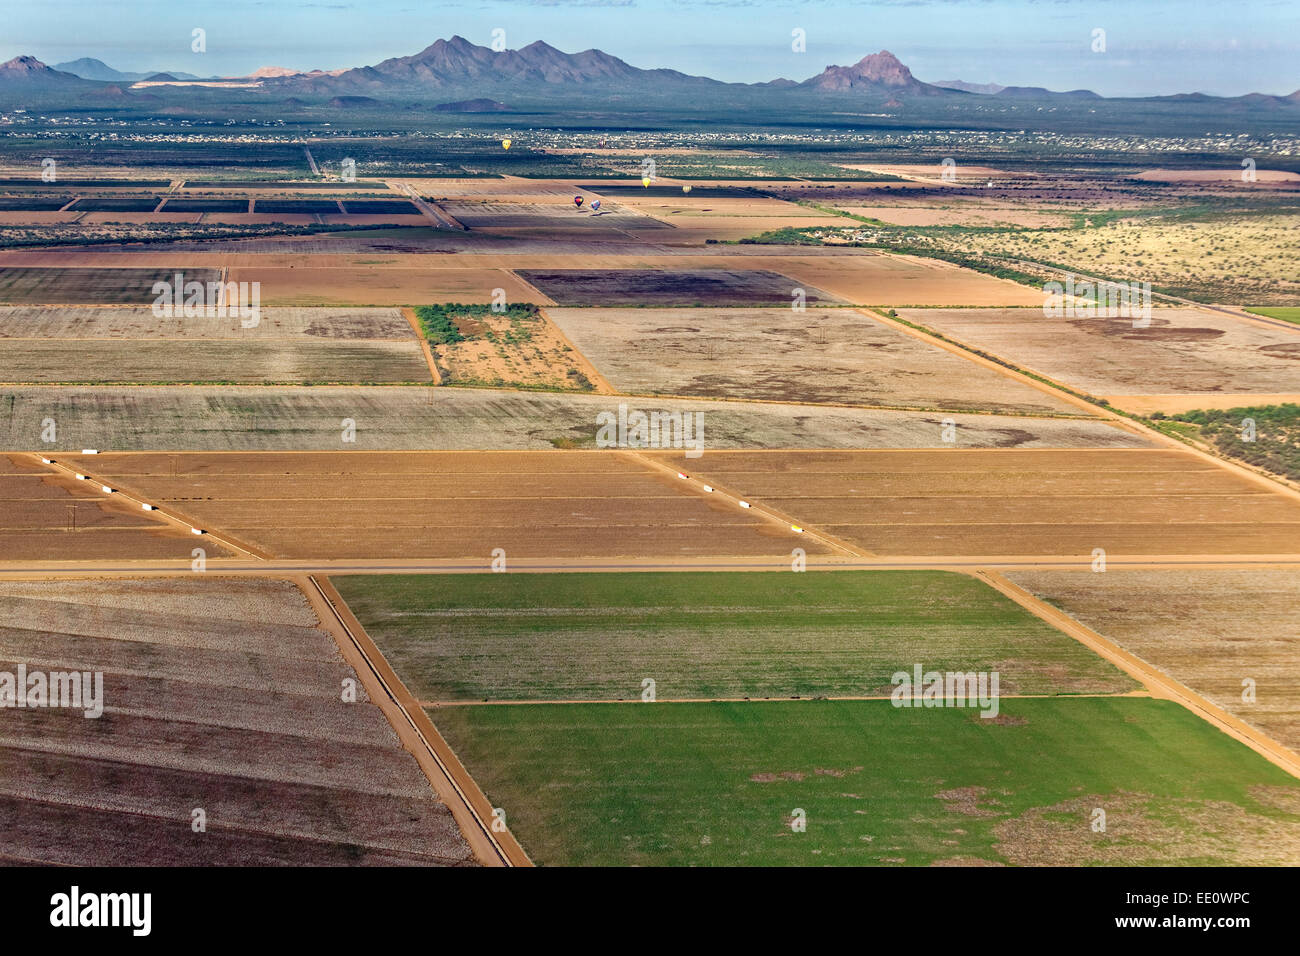 Aerial of Agriculture in Marana, Arizona - Stock Image